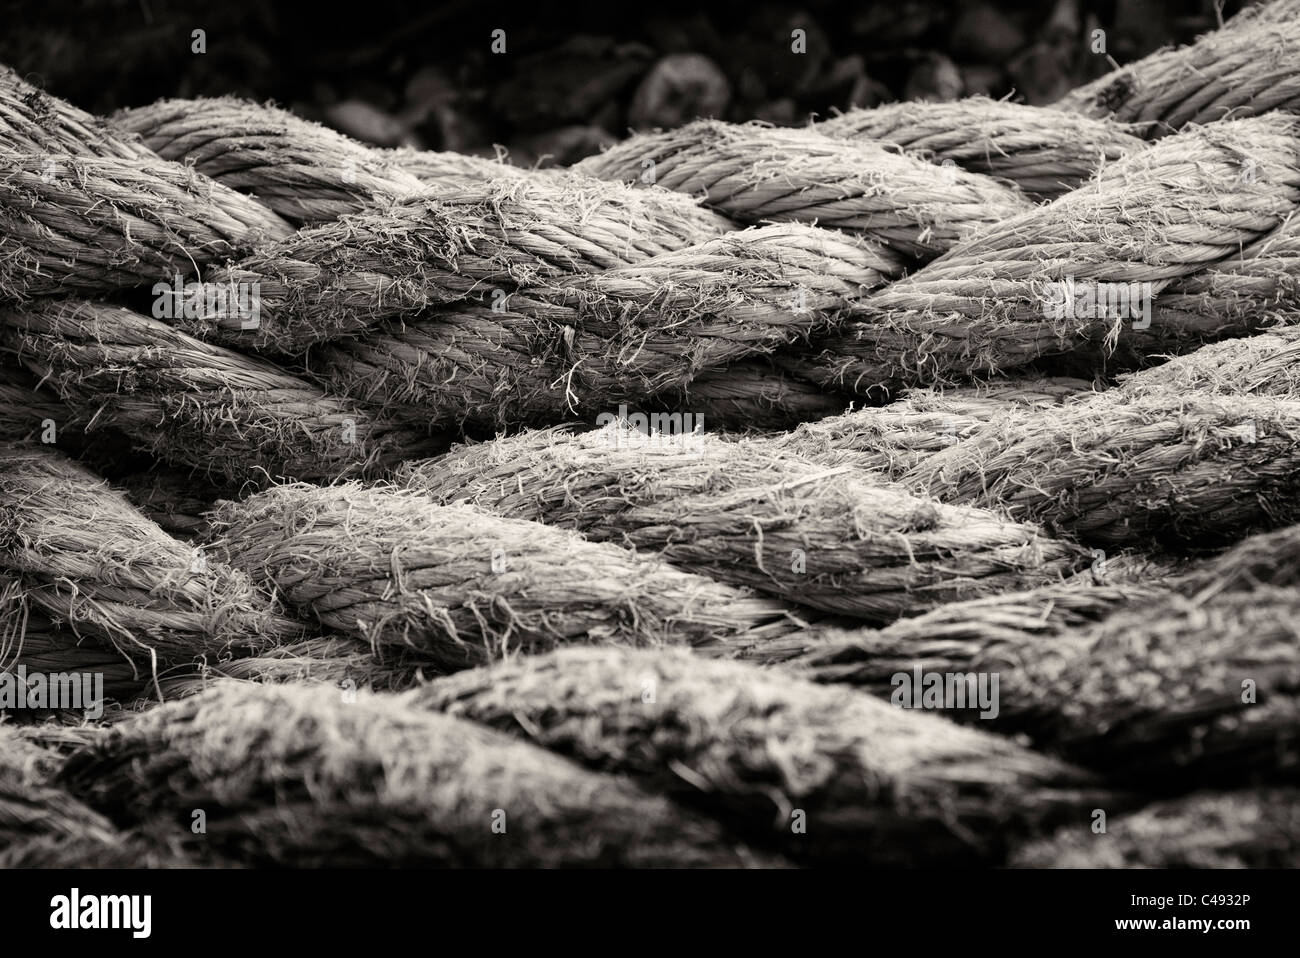 close up of a coil of old rope in black and white - Stock Image